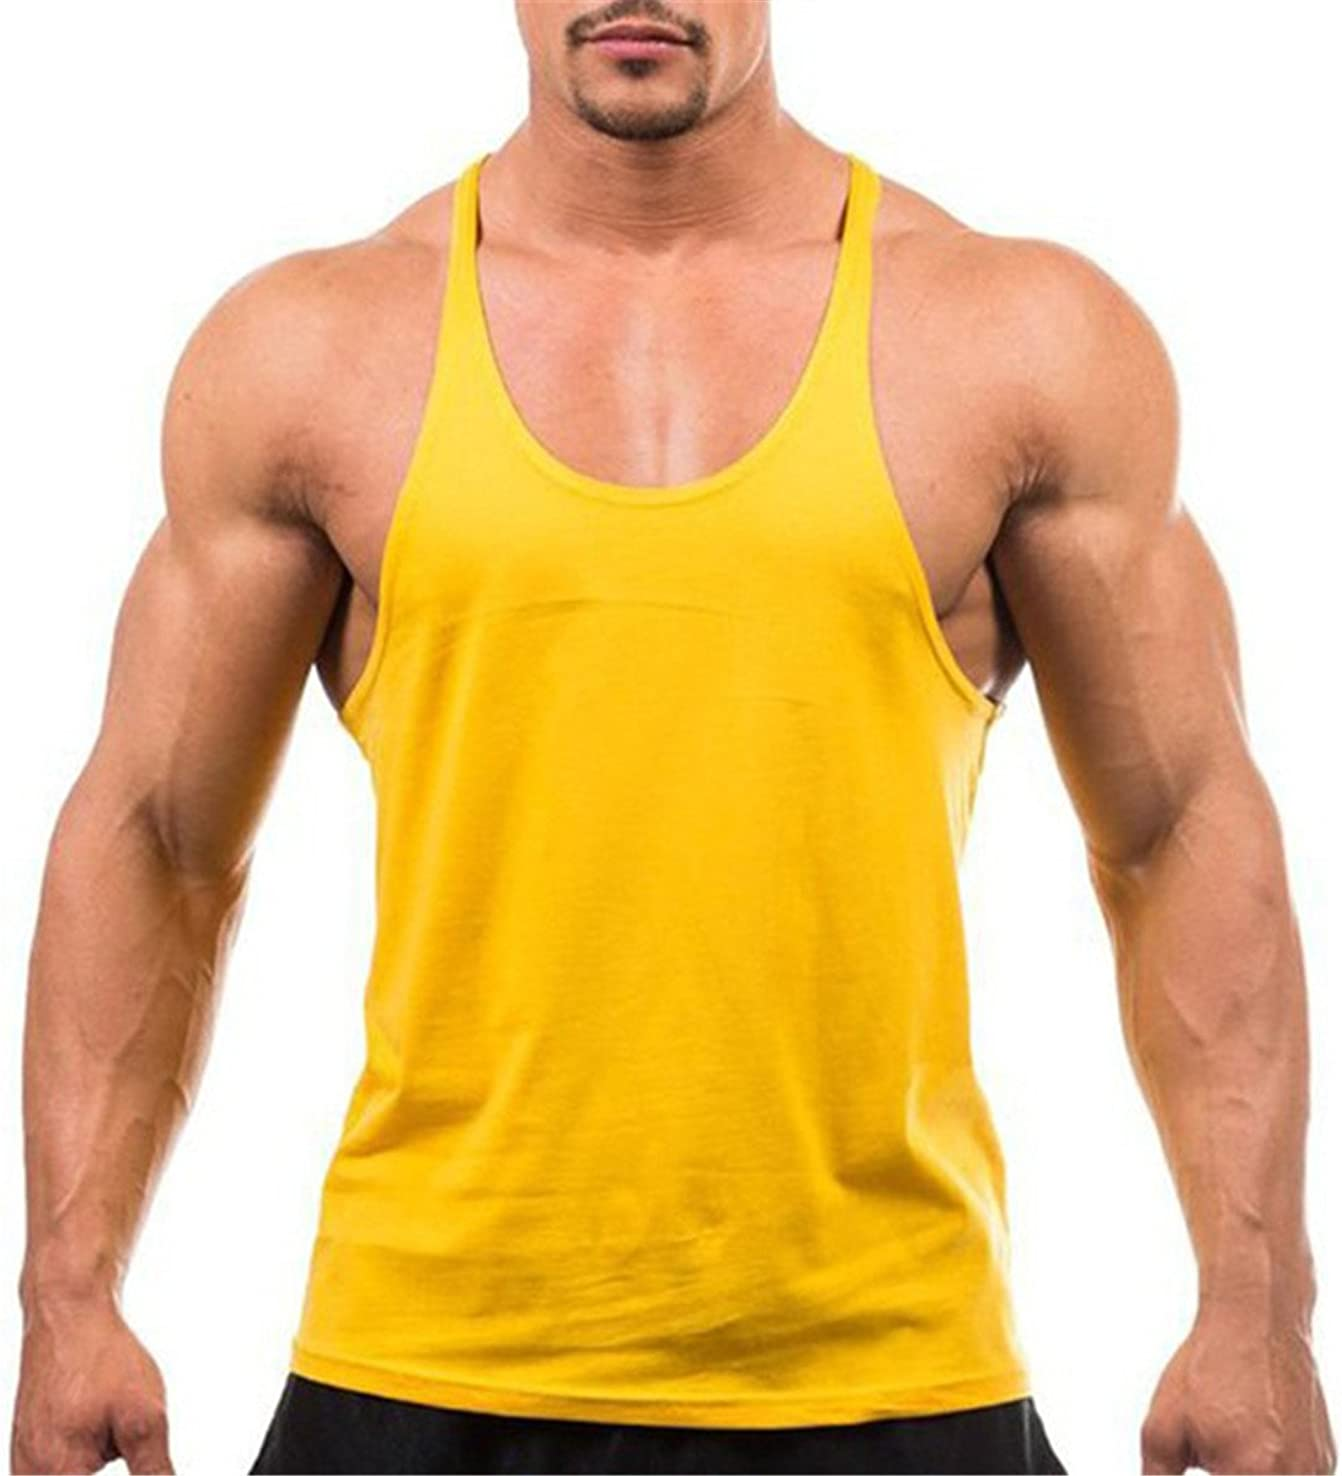 Chiced Mens T-Shirts Sleeveless Sportswear Training Fitness Sports Athletic Vests Mens Sports Top